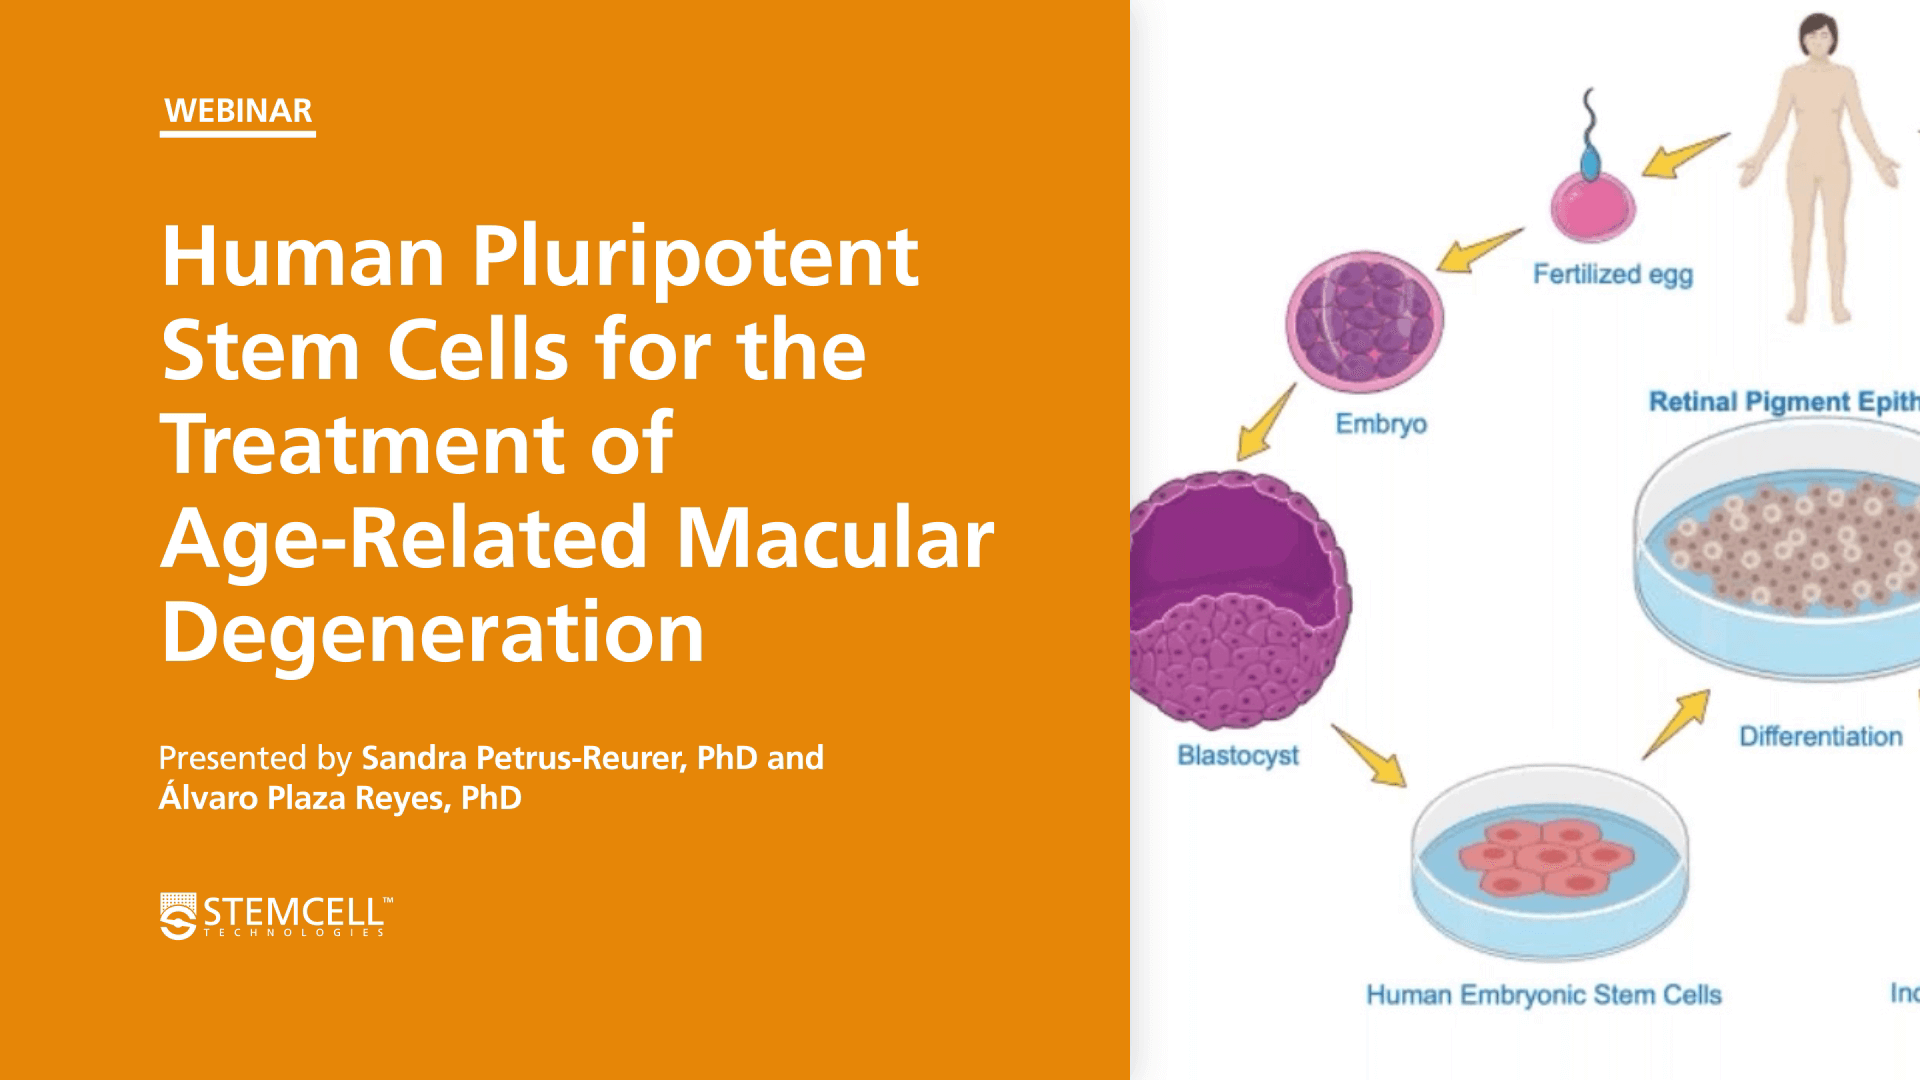 Human Pluripotent Stem Cells for the Treatment of Age-Related Macular Degeneration and Compliance Considerations for Clinical-Grade iPSCs